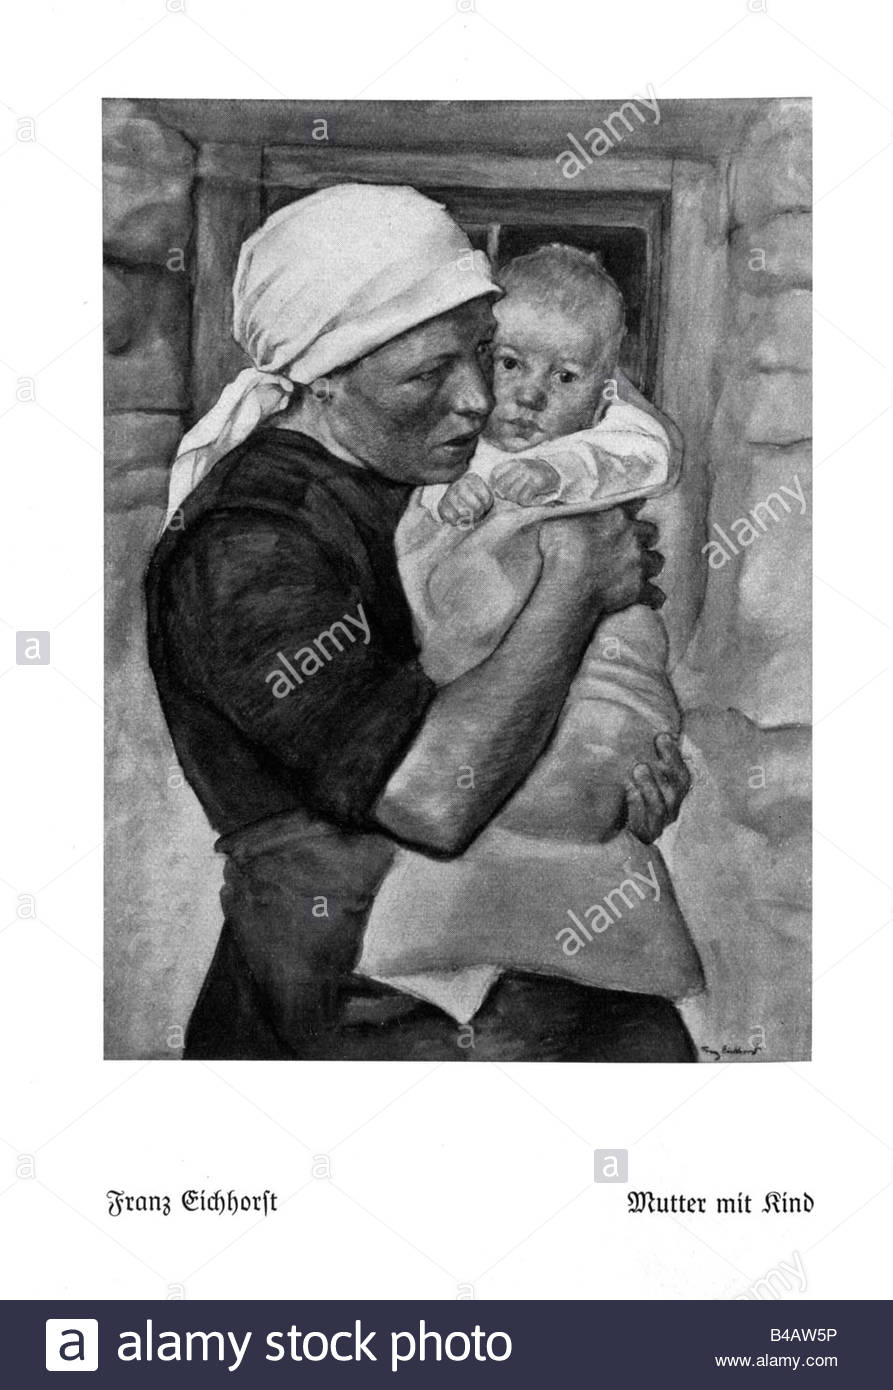 Franz Eichhorst (1885 - 1948) - 'Mother with Child'., Watercolour on paper/cardboard, signed on the lower - Stock Image